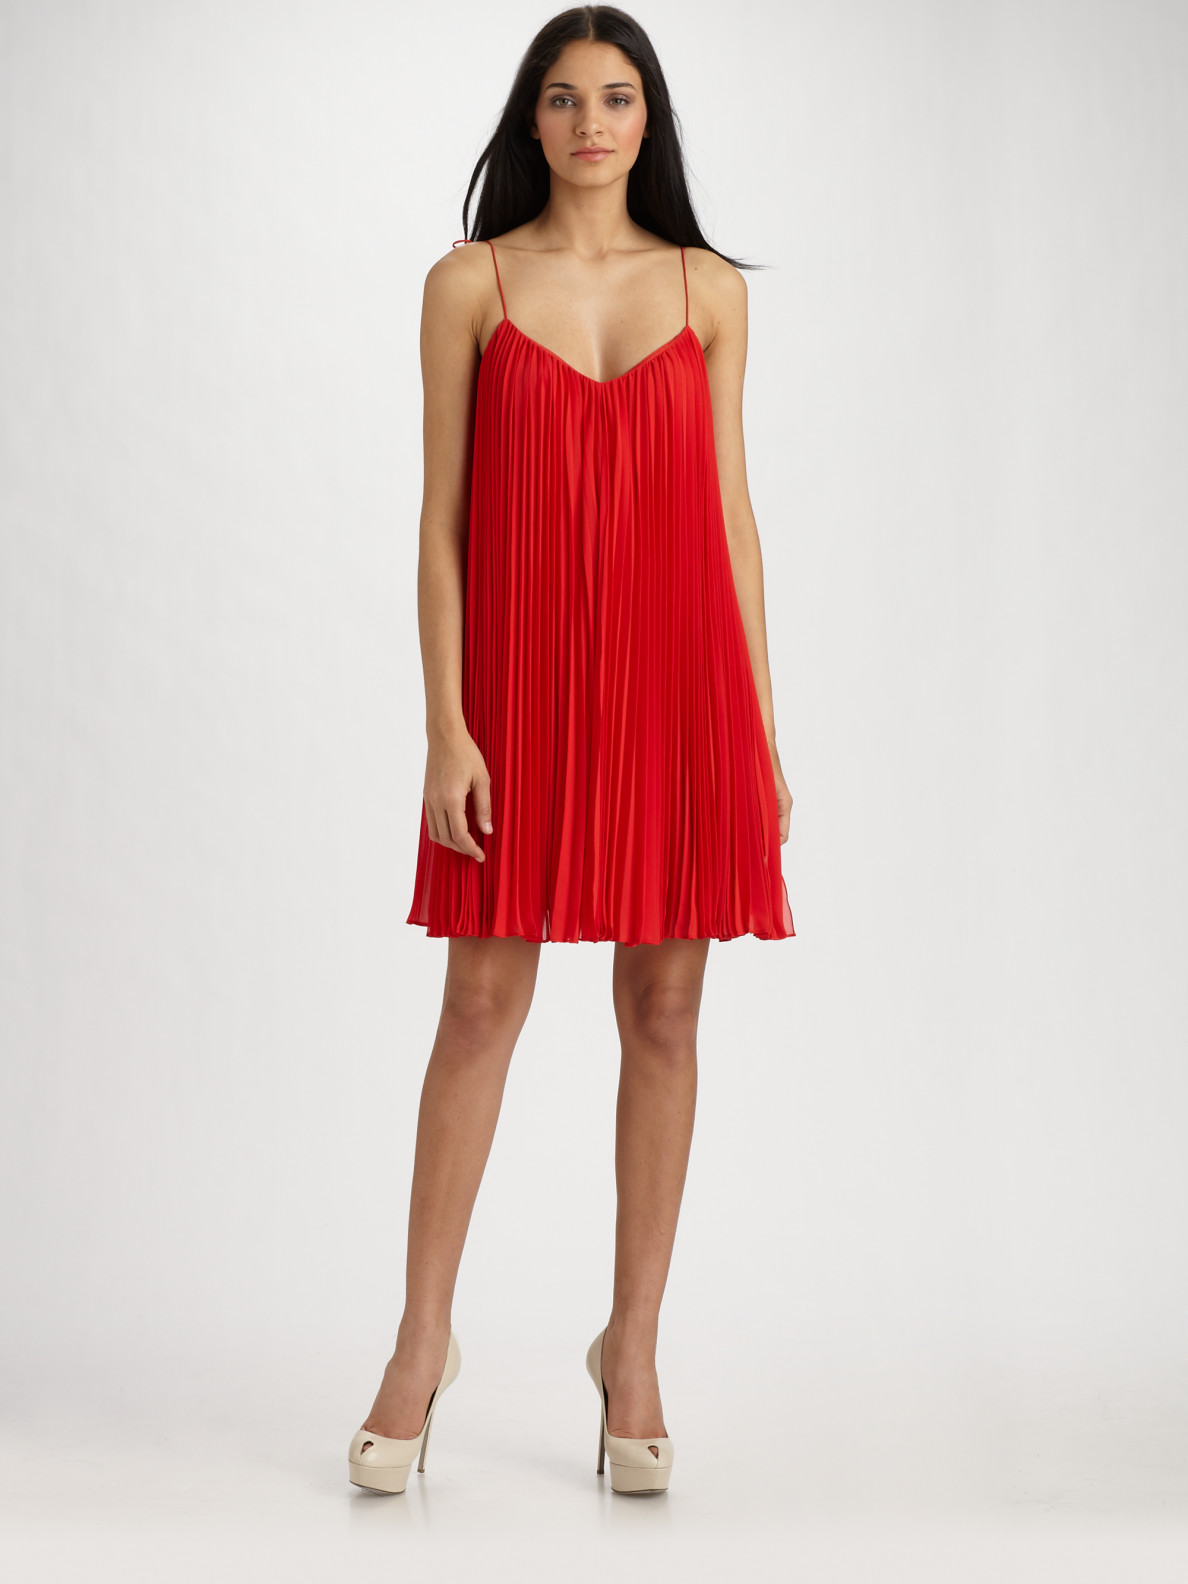 Halston Pleated Spaghetti Strap Dress in Red - Lyst